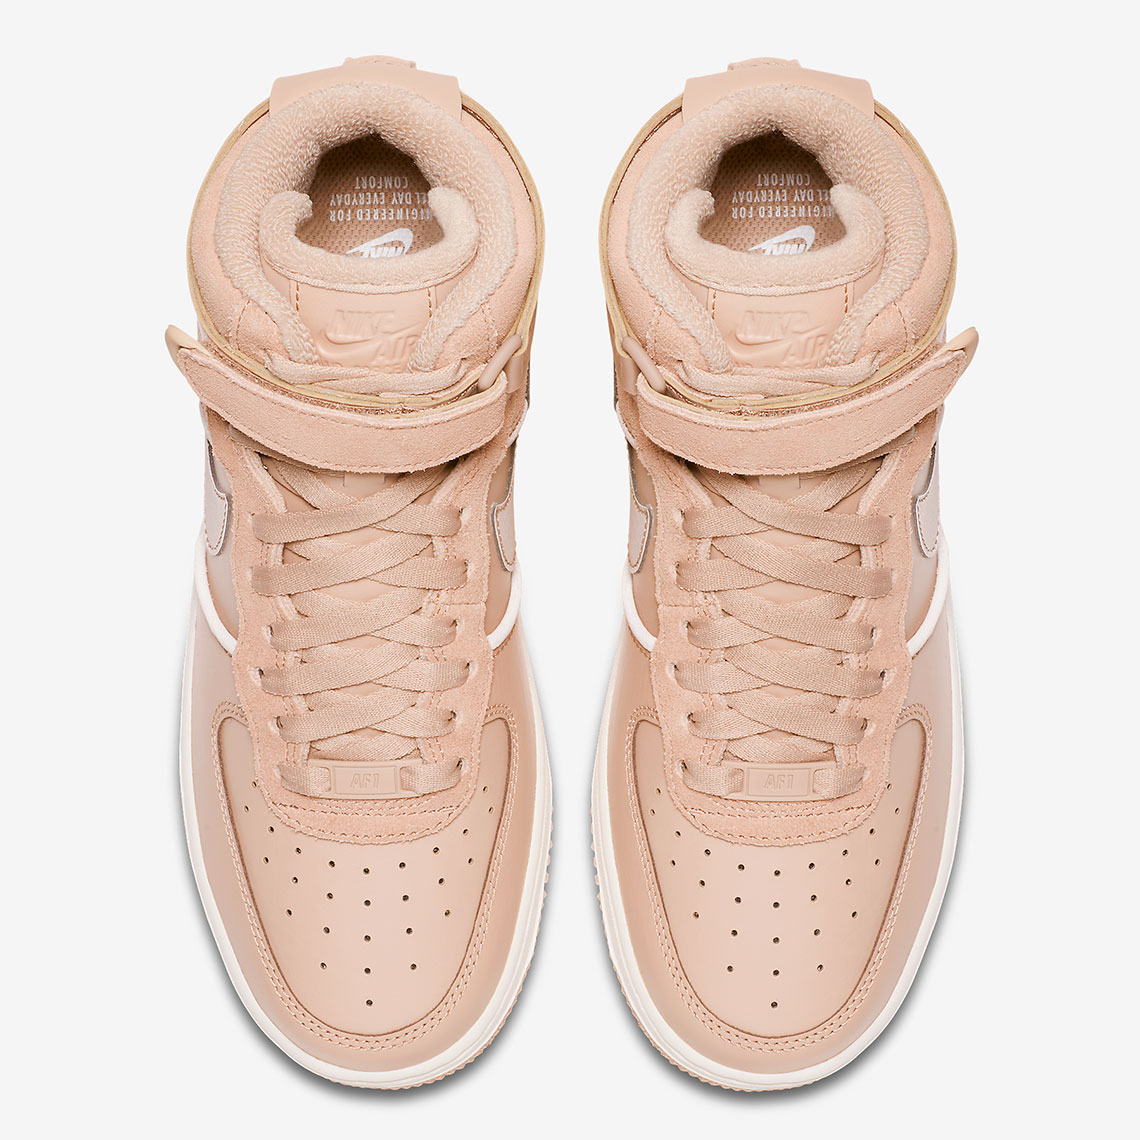 separation shoes 9b9f5 d66be Nike Air Force 1 High Release Date  November 8, 2018  140. Color  Bio Beige Bio  Beige-Sail Style Code  BV0312-200. Advertisement. Advertisement